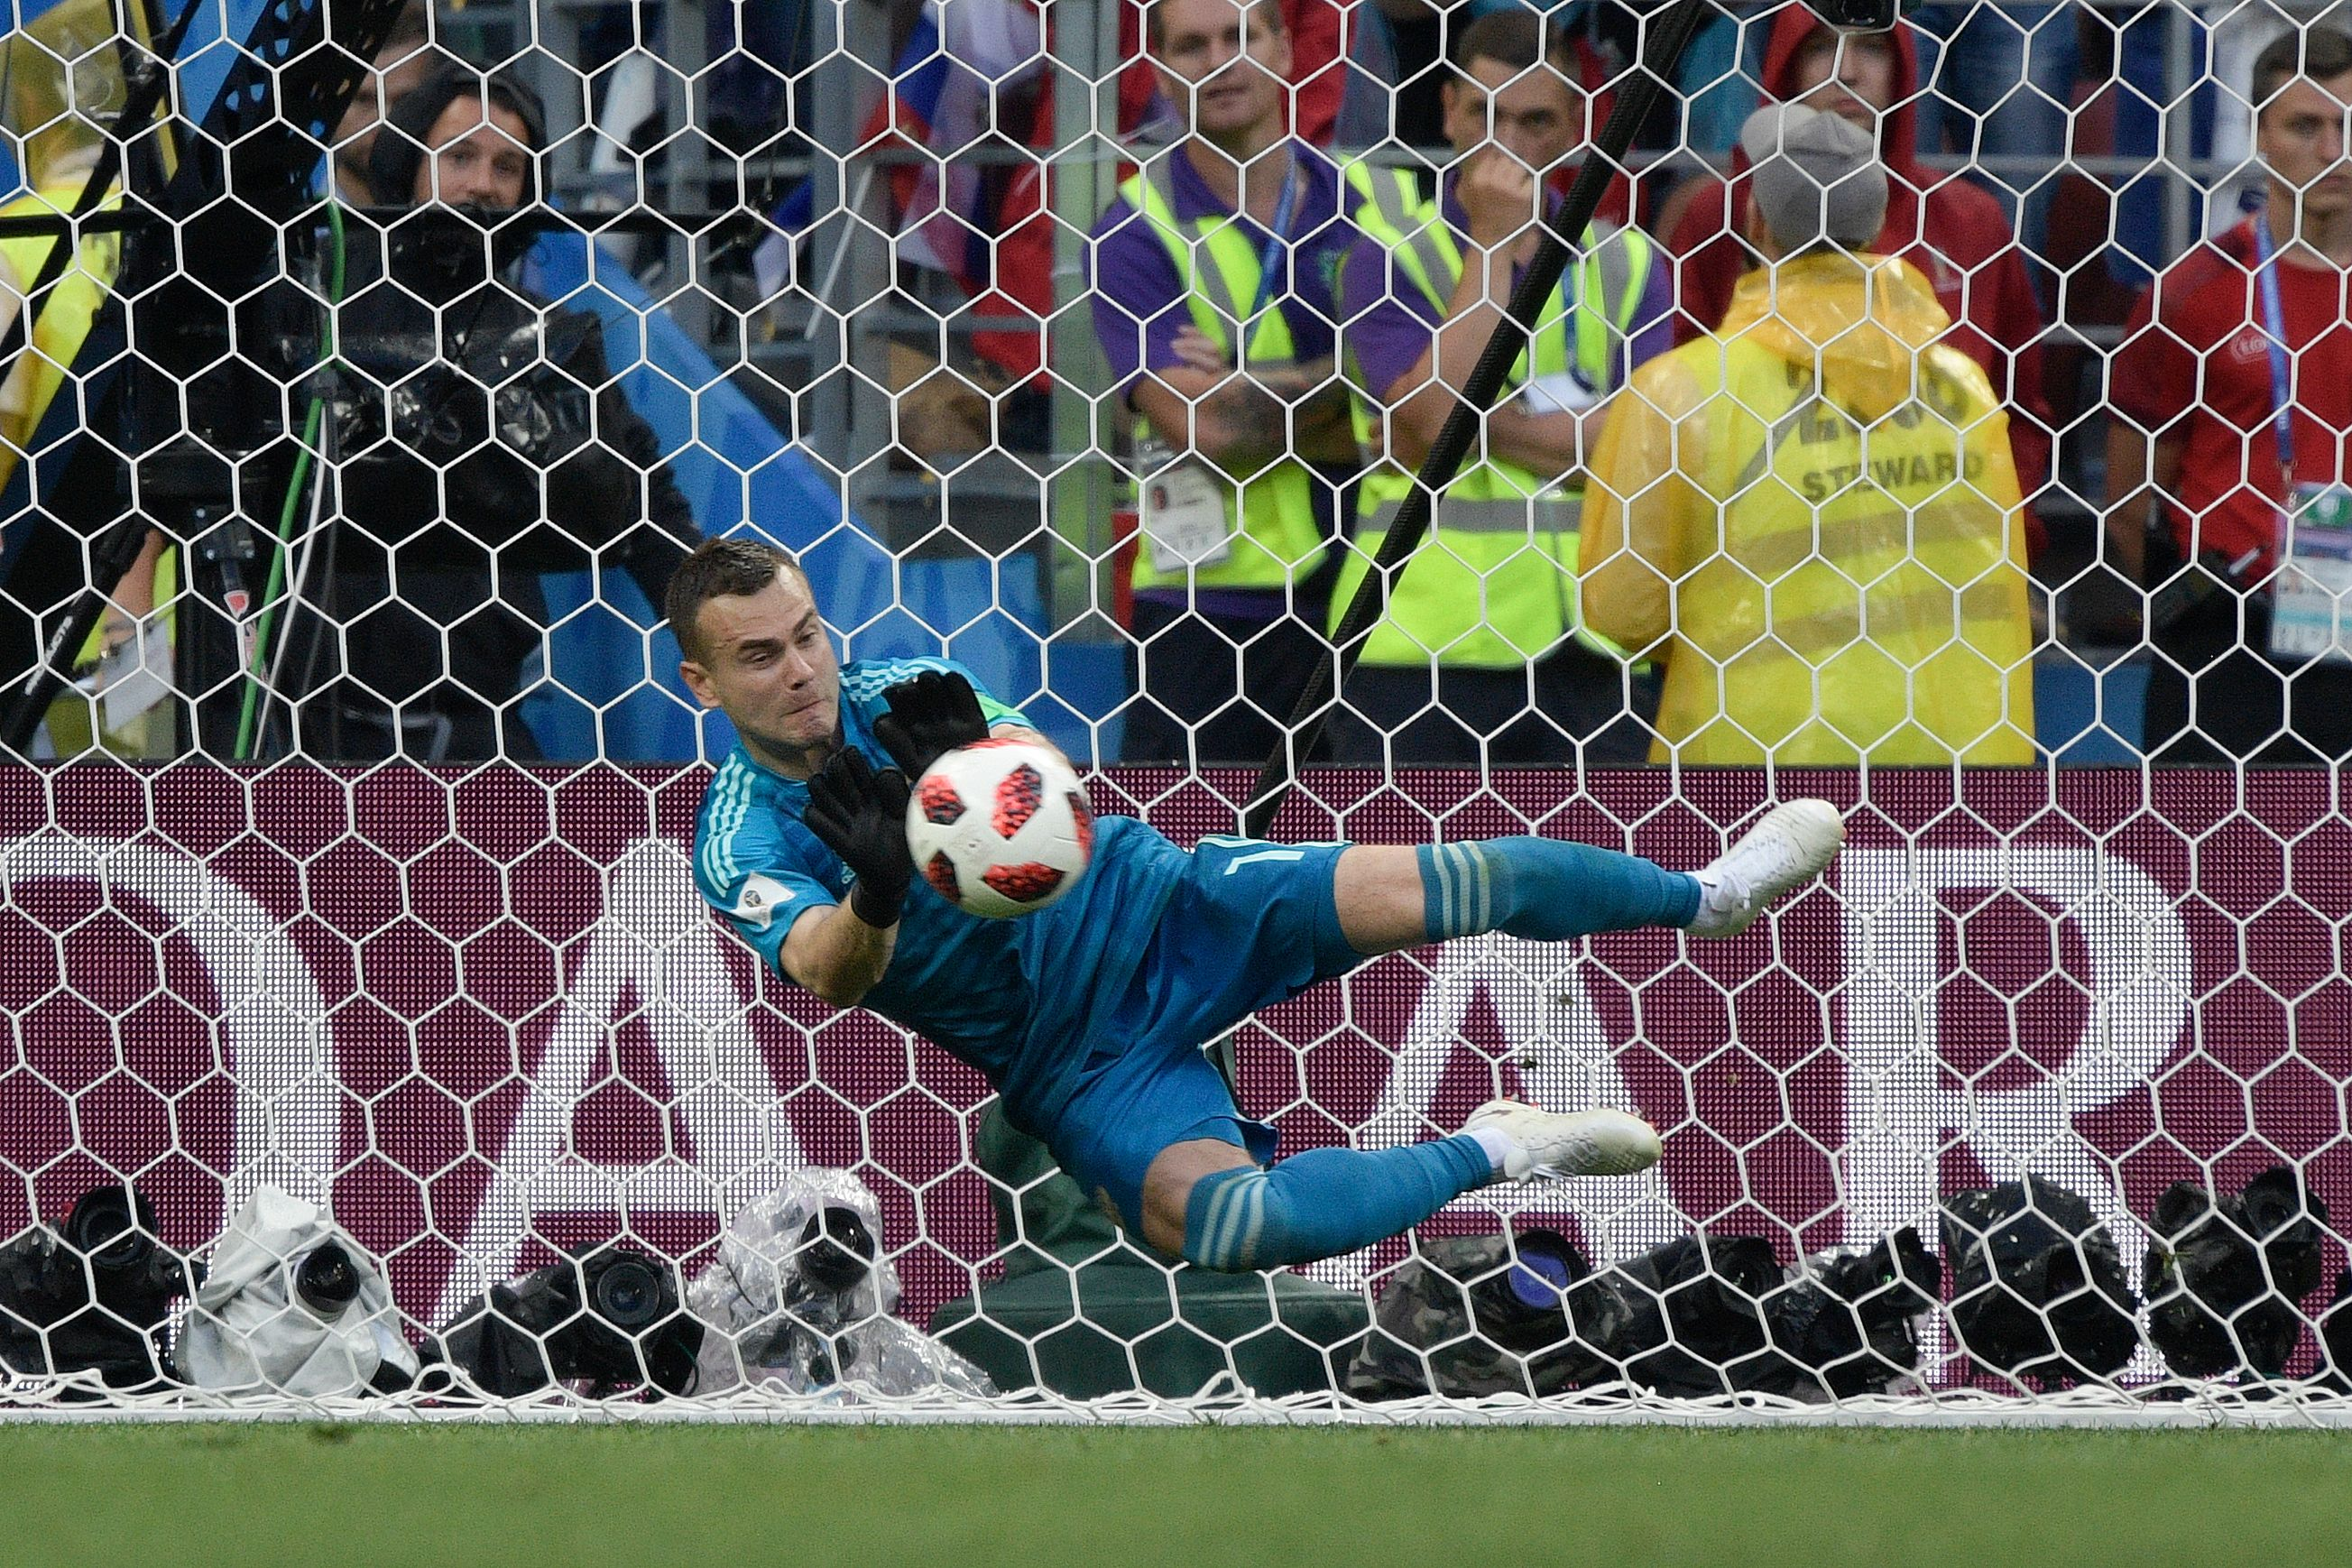 Akinfeev|Getty